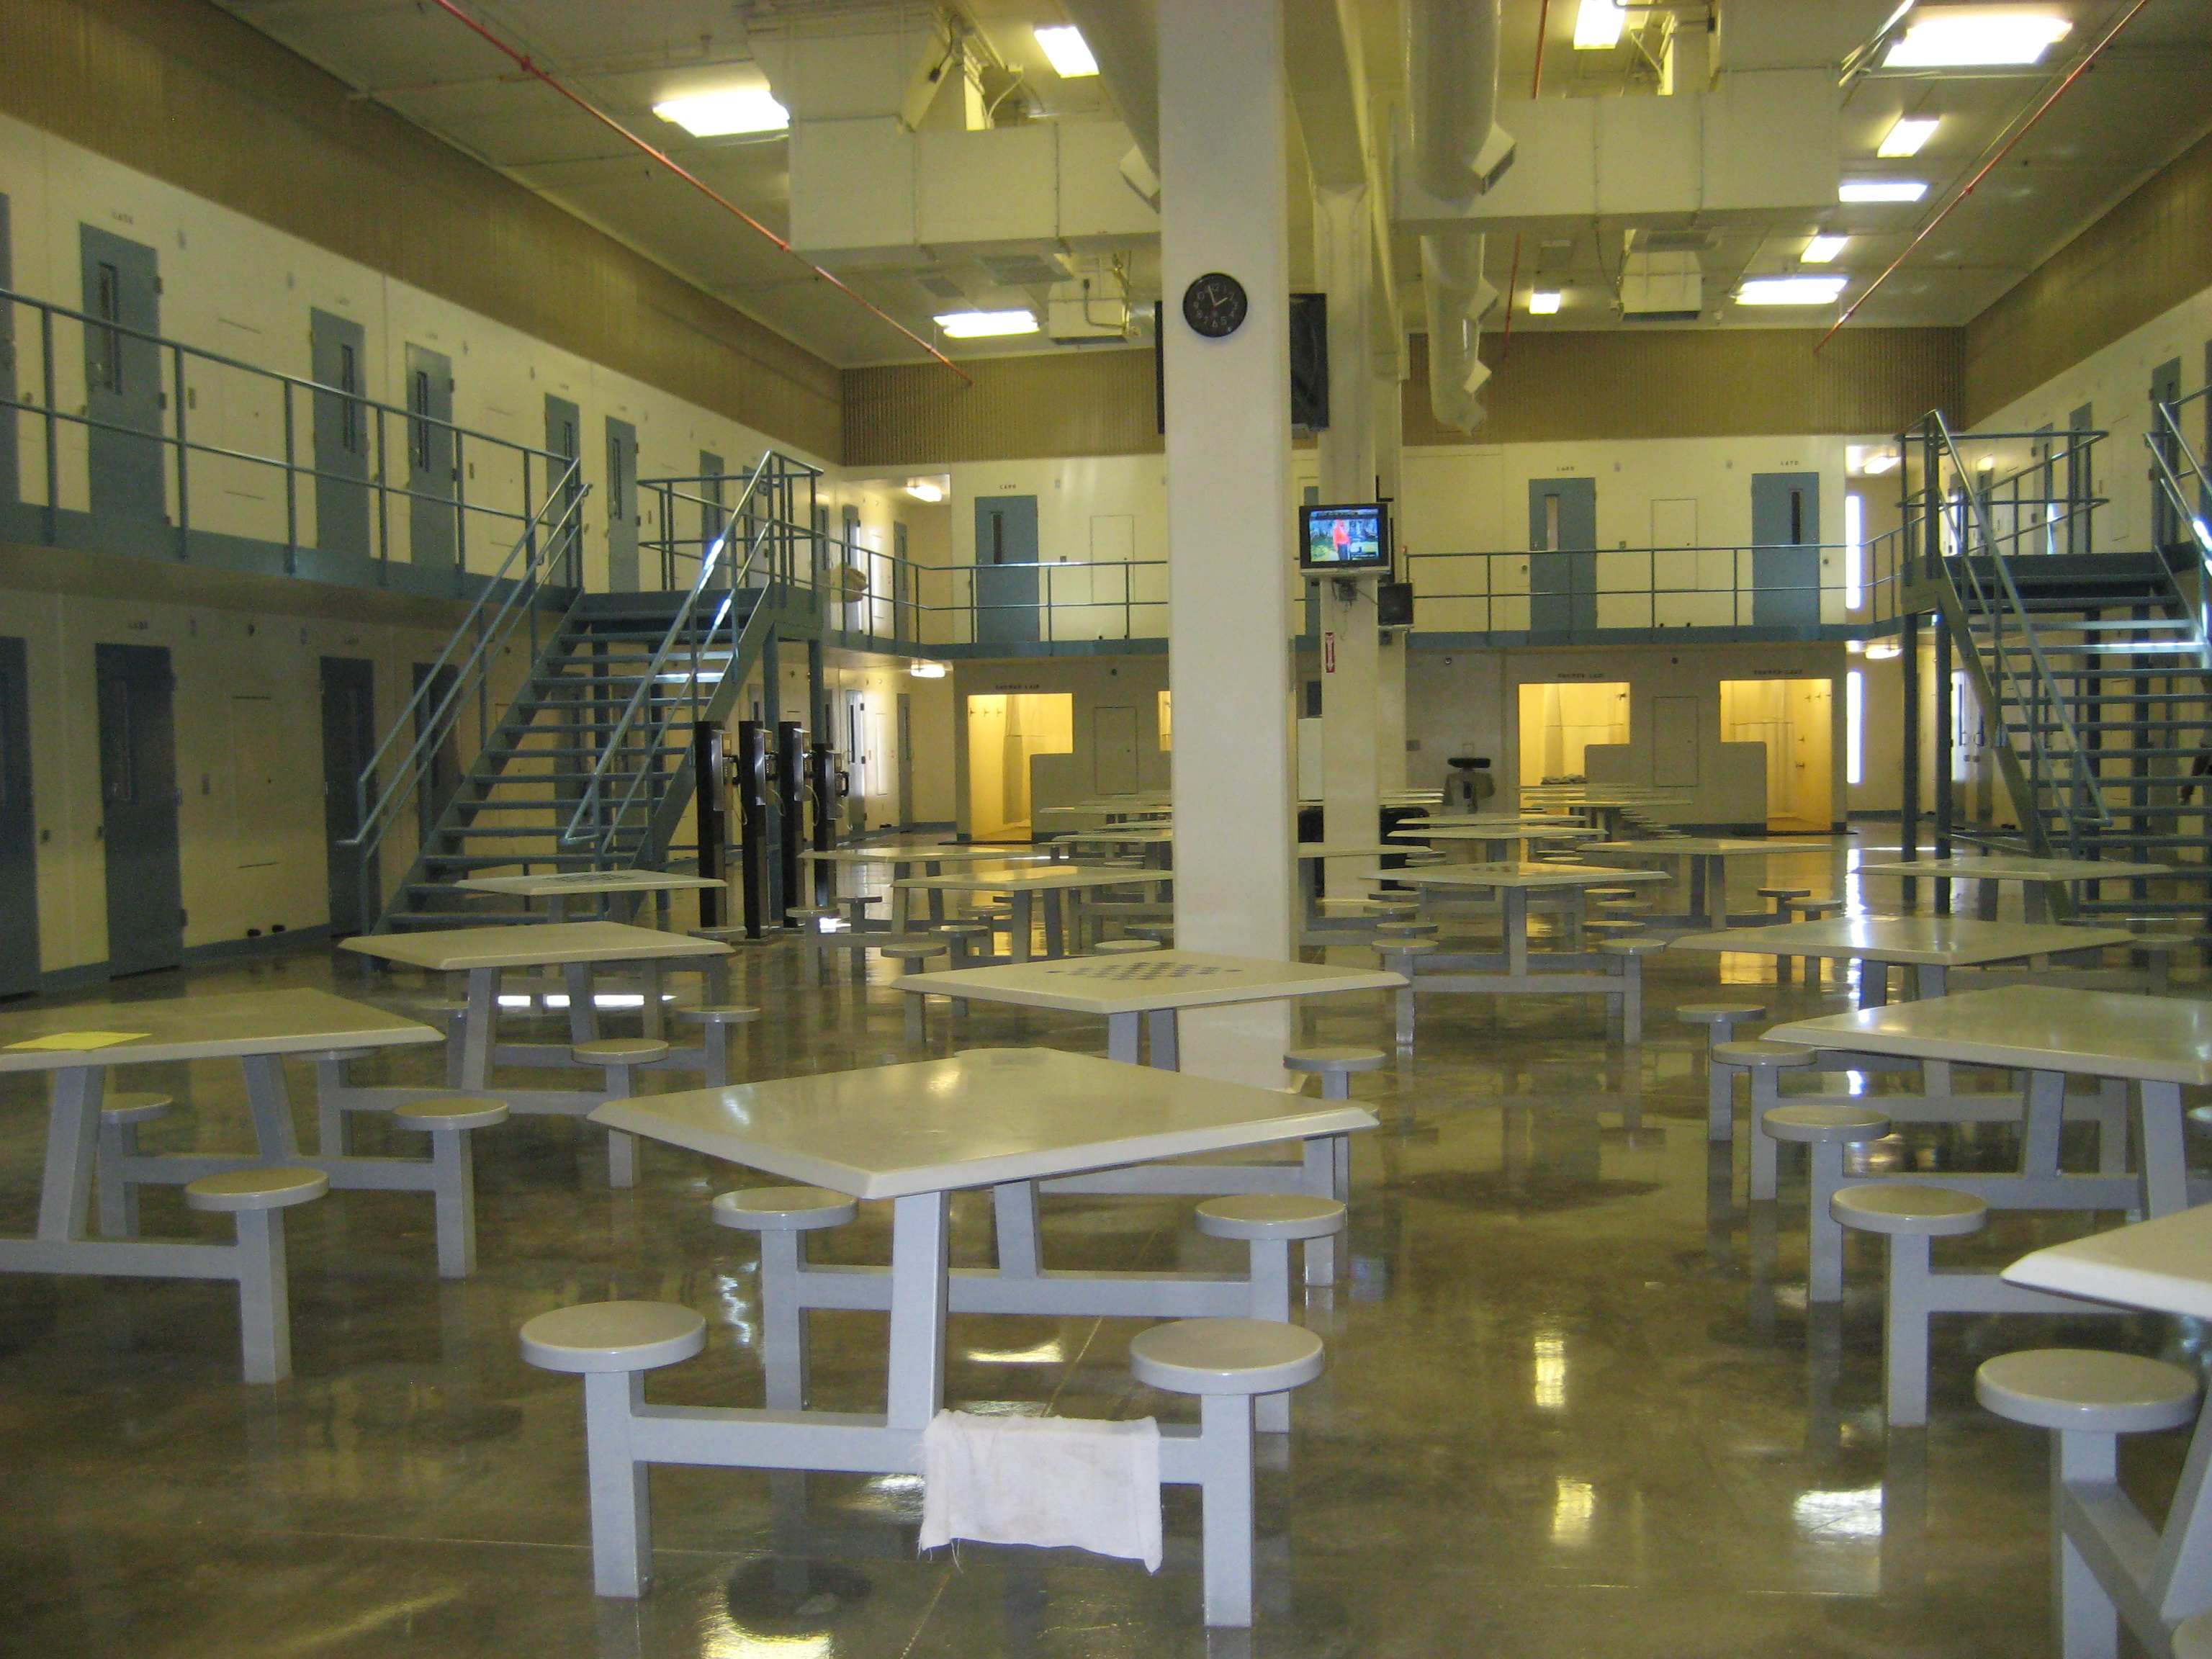 ACLU Hawaii to Sue Mainland Prison Company